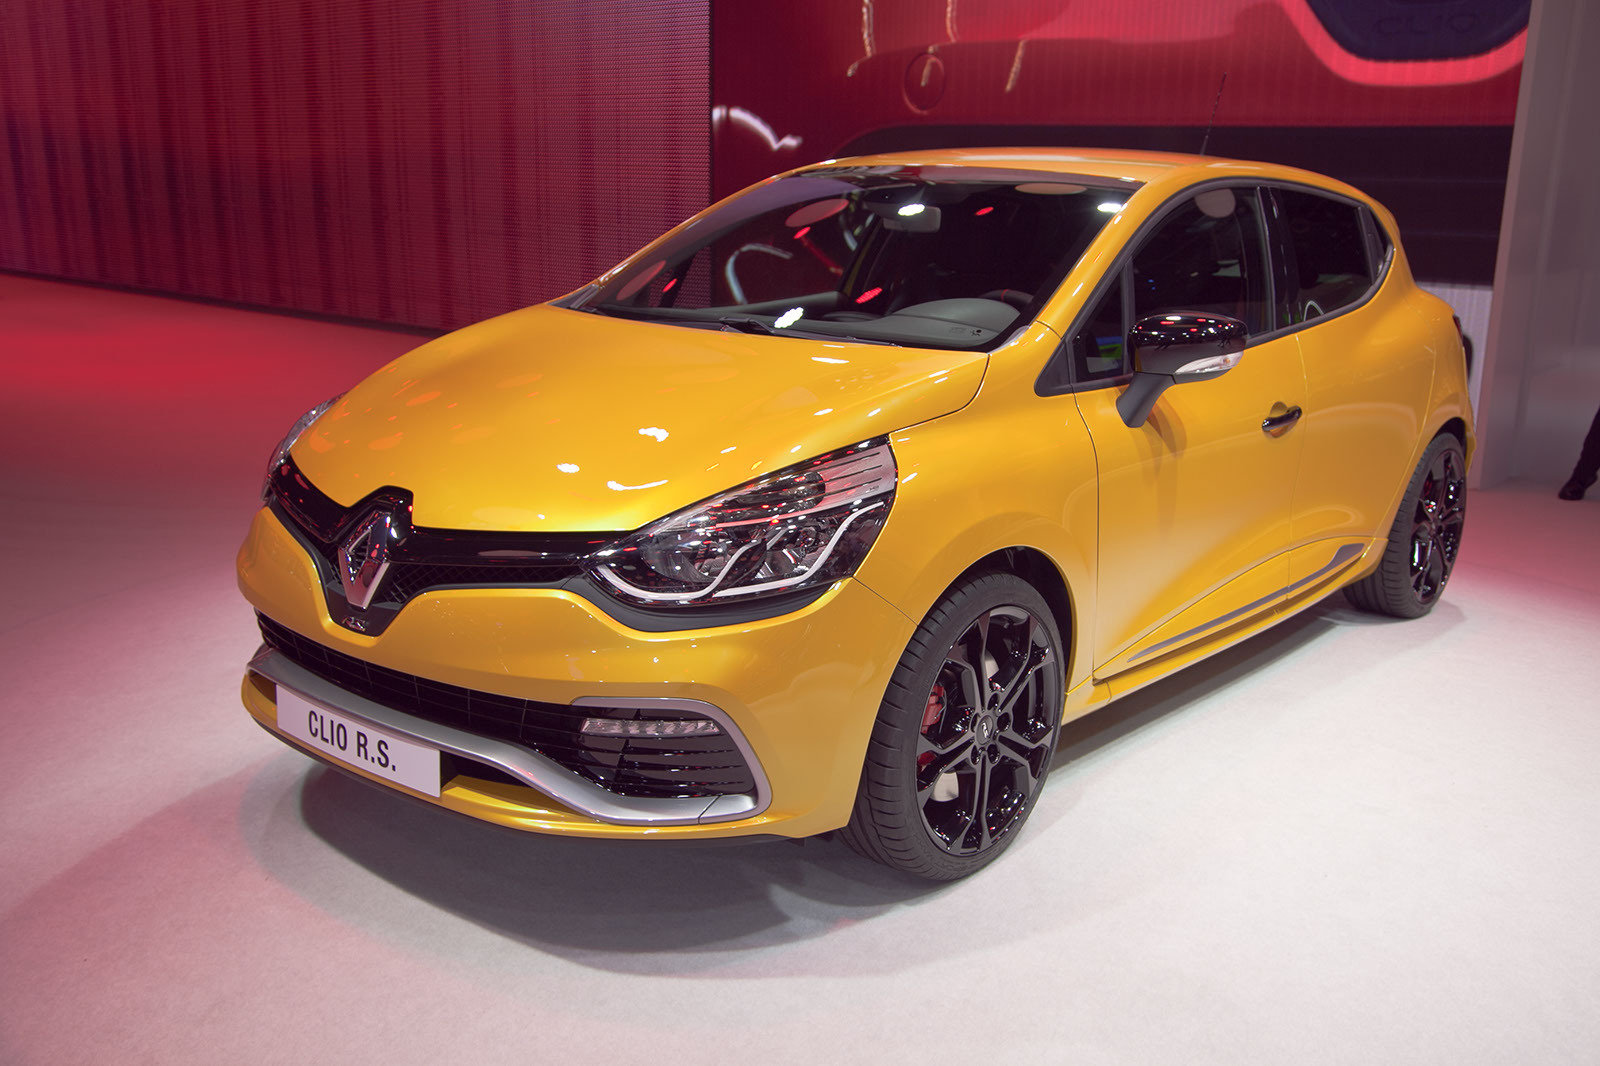 2013 renault clio rs 200 turbo picture 475986 car review top speed. Black Bedroom Furniture Sets. Home Design Ideas